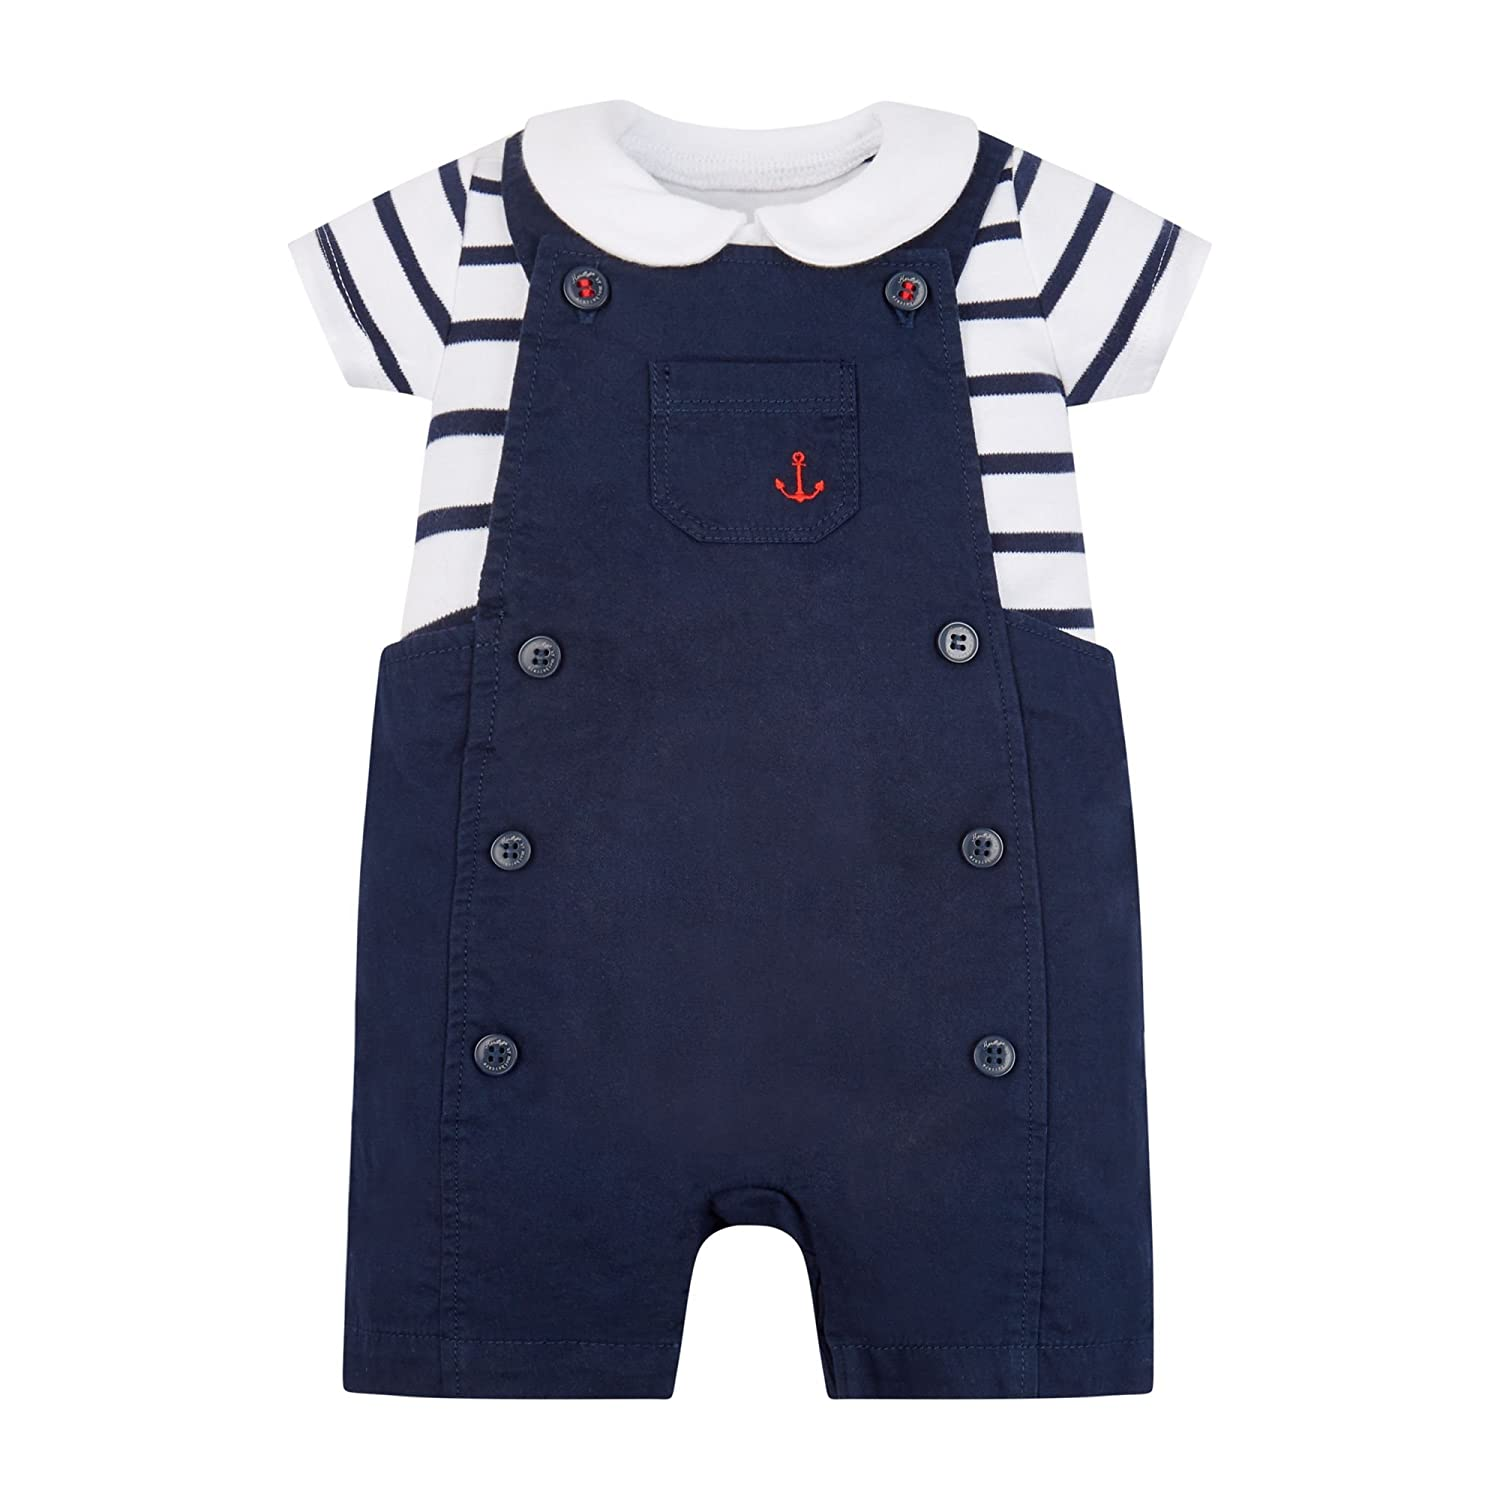 Mothercare Baby Boys' Heritage Clothing Set